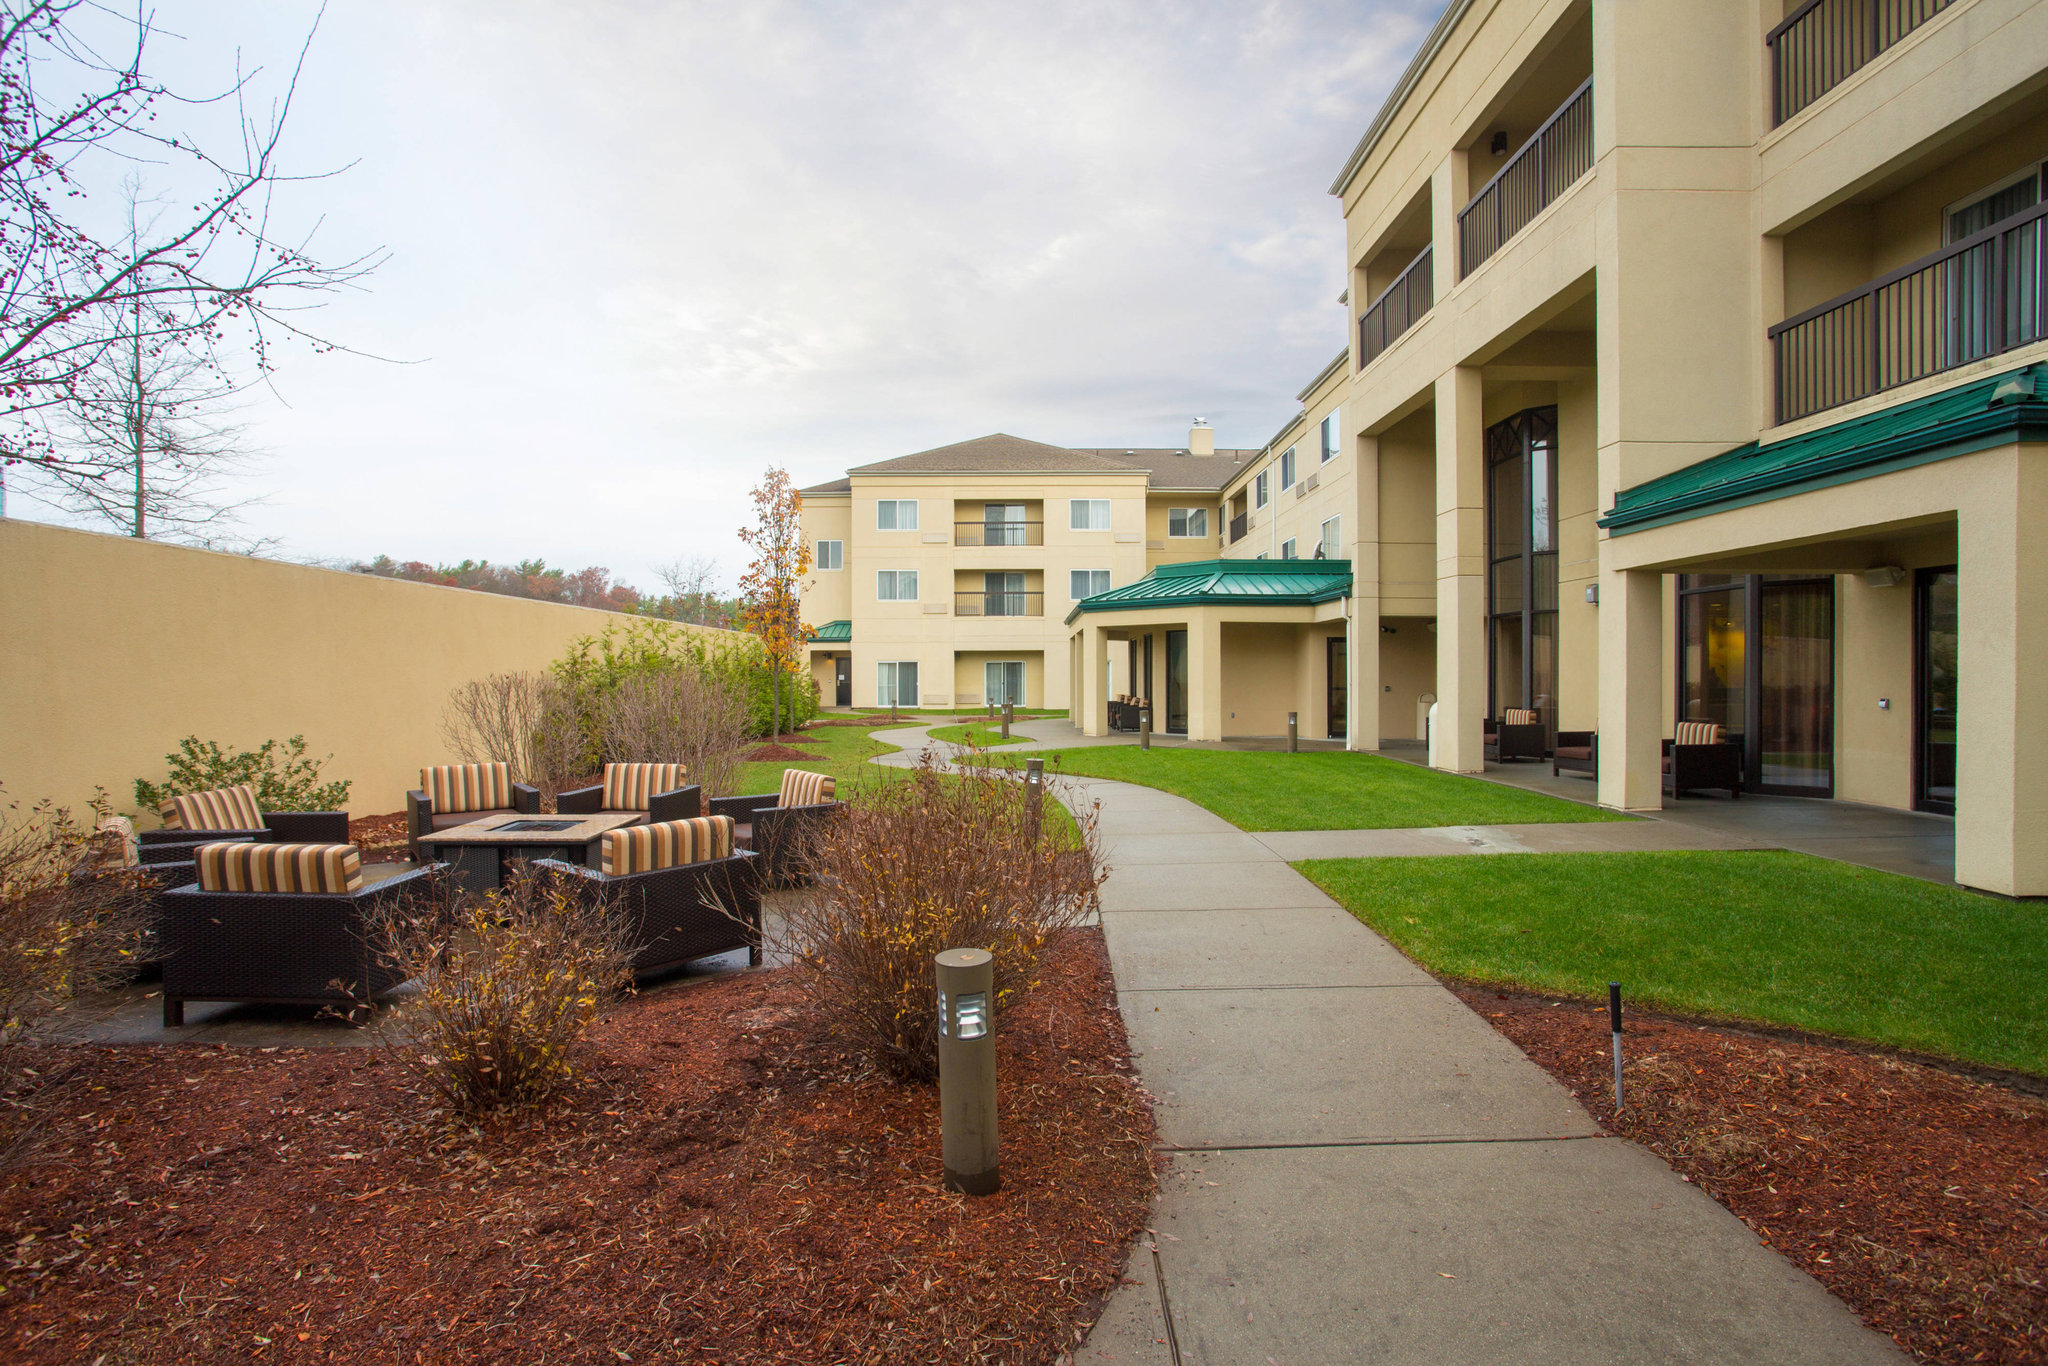 Courtyard by Marriott Boston Raynham